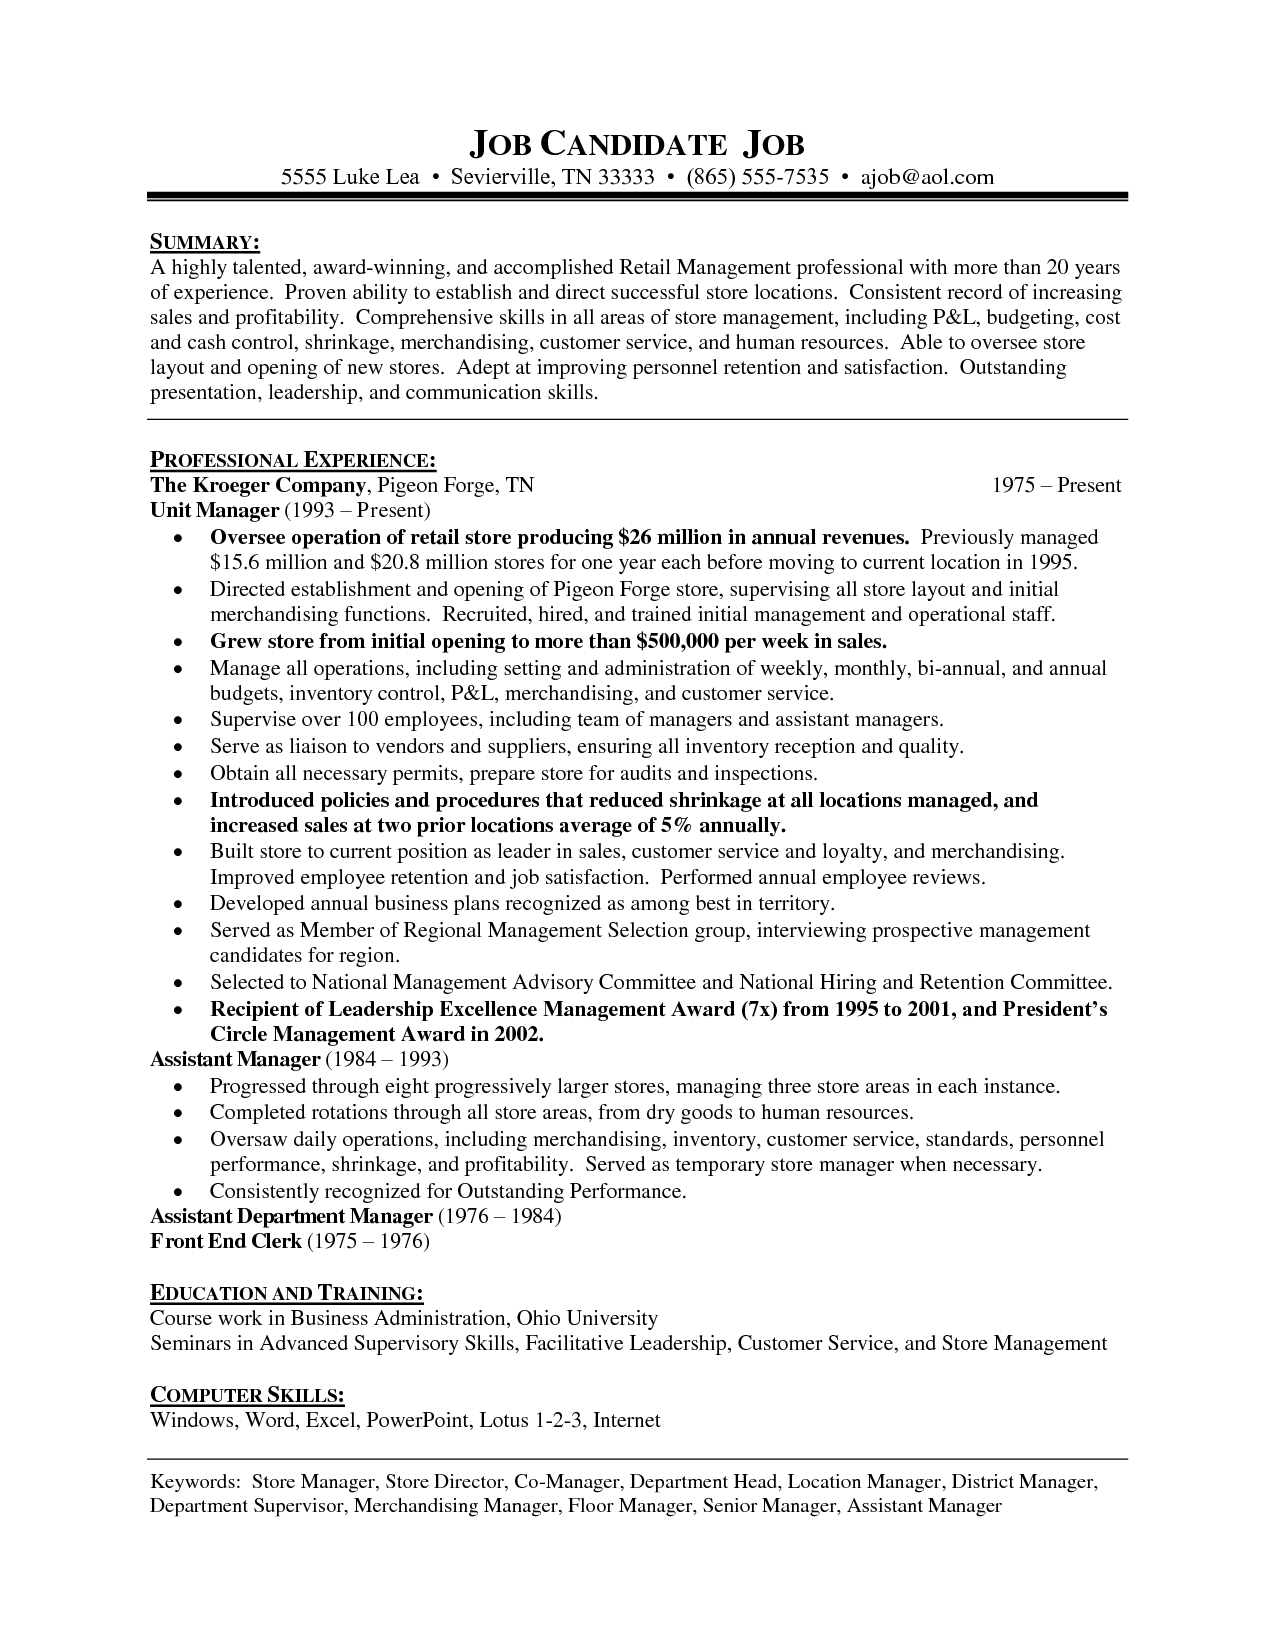 Grocery Store Manager Resume Example - Examples of Resumes